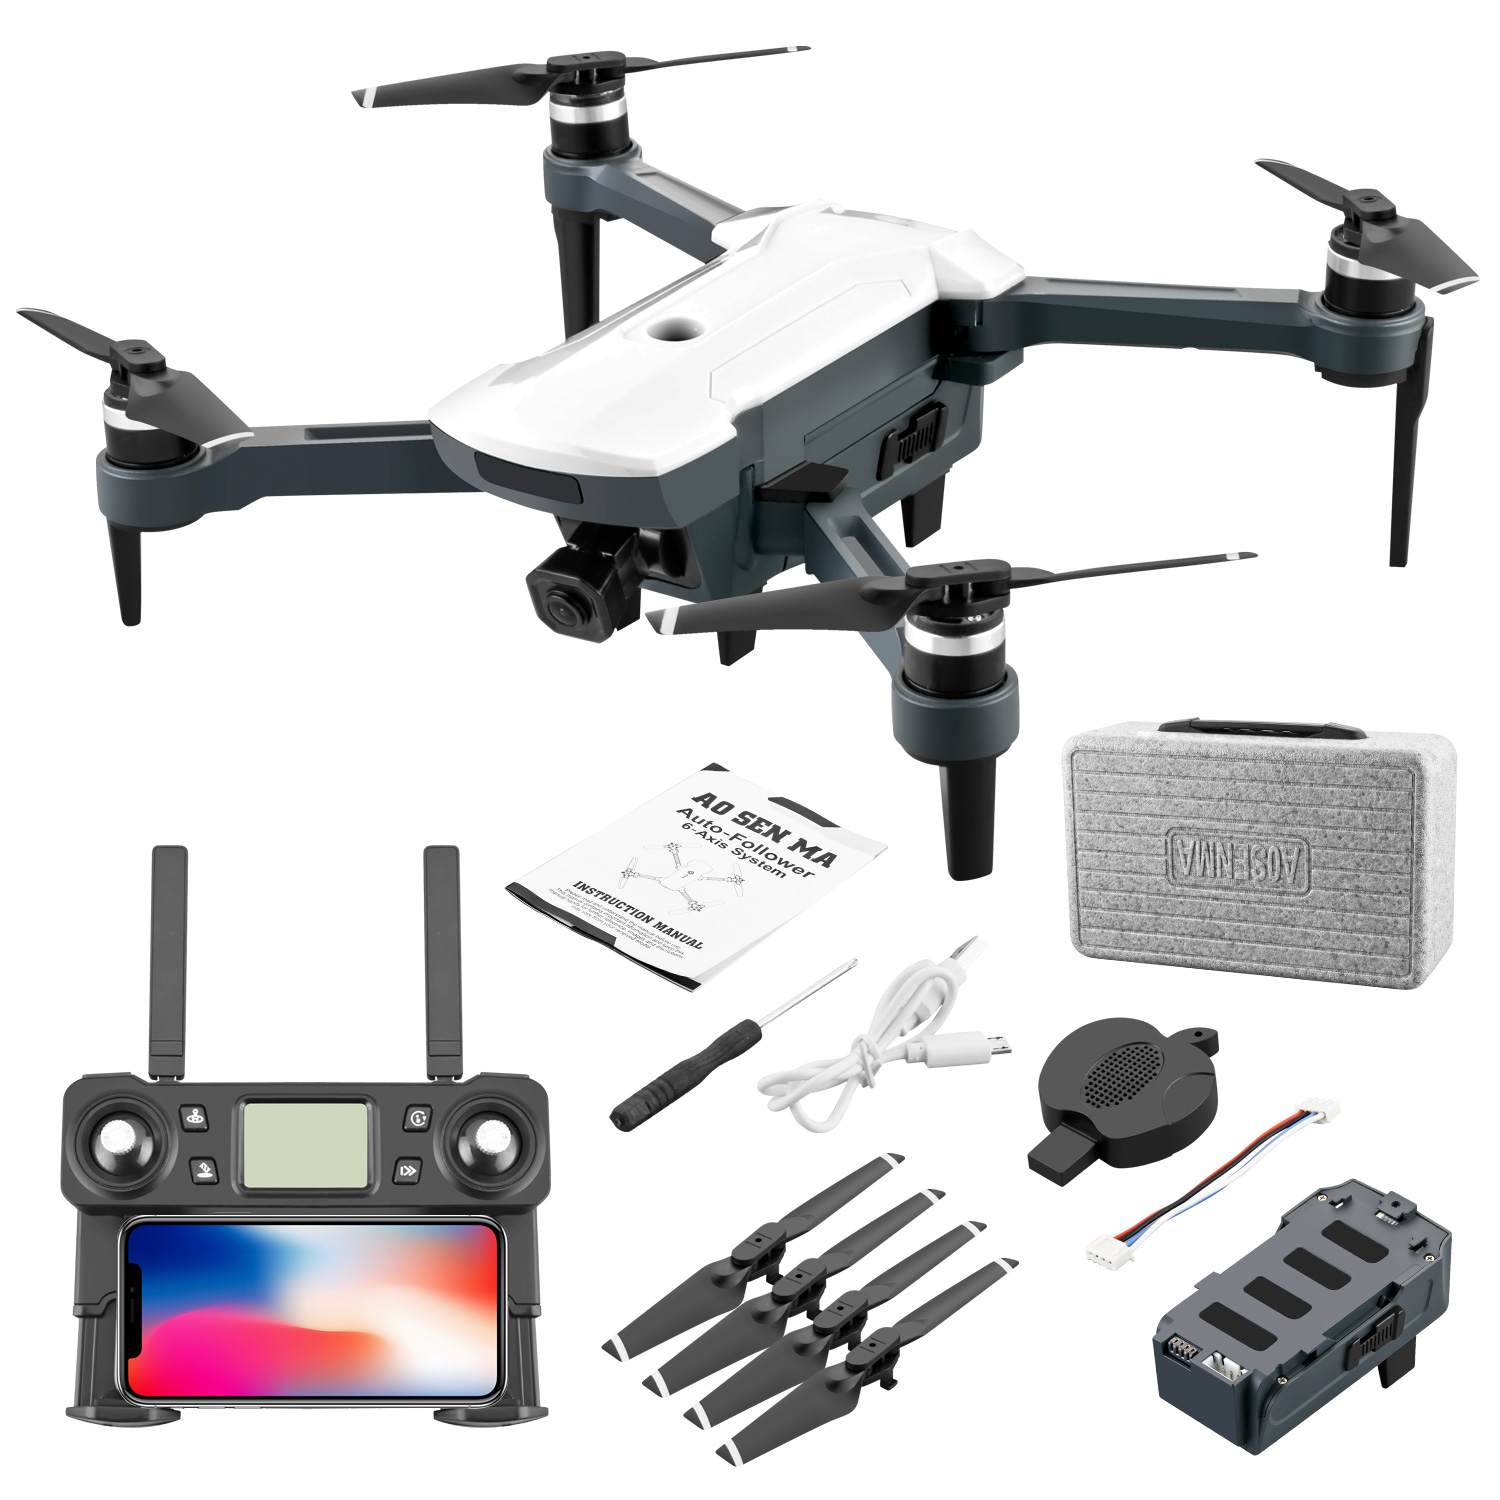 CG028 4K HD 16 Megapixel Aerial Drone With 5G Image Transmission GPS Positioning Foldable RC Quadcopter white_Single battery